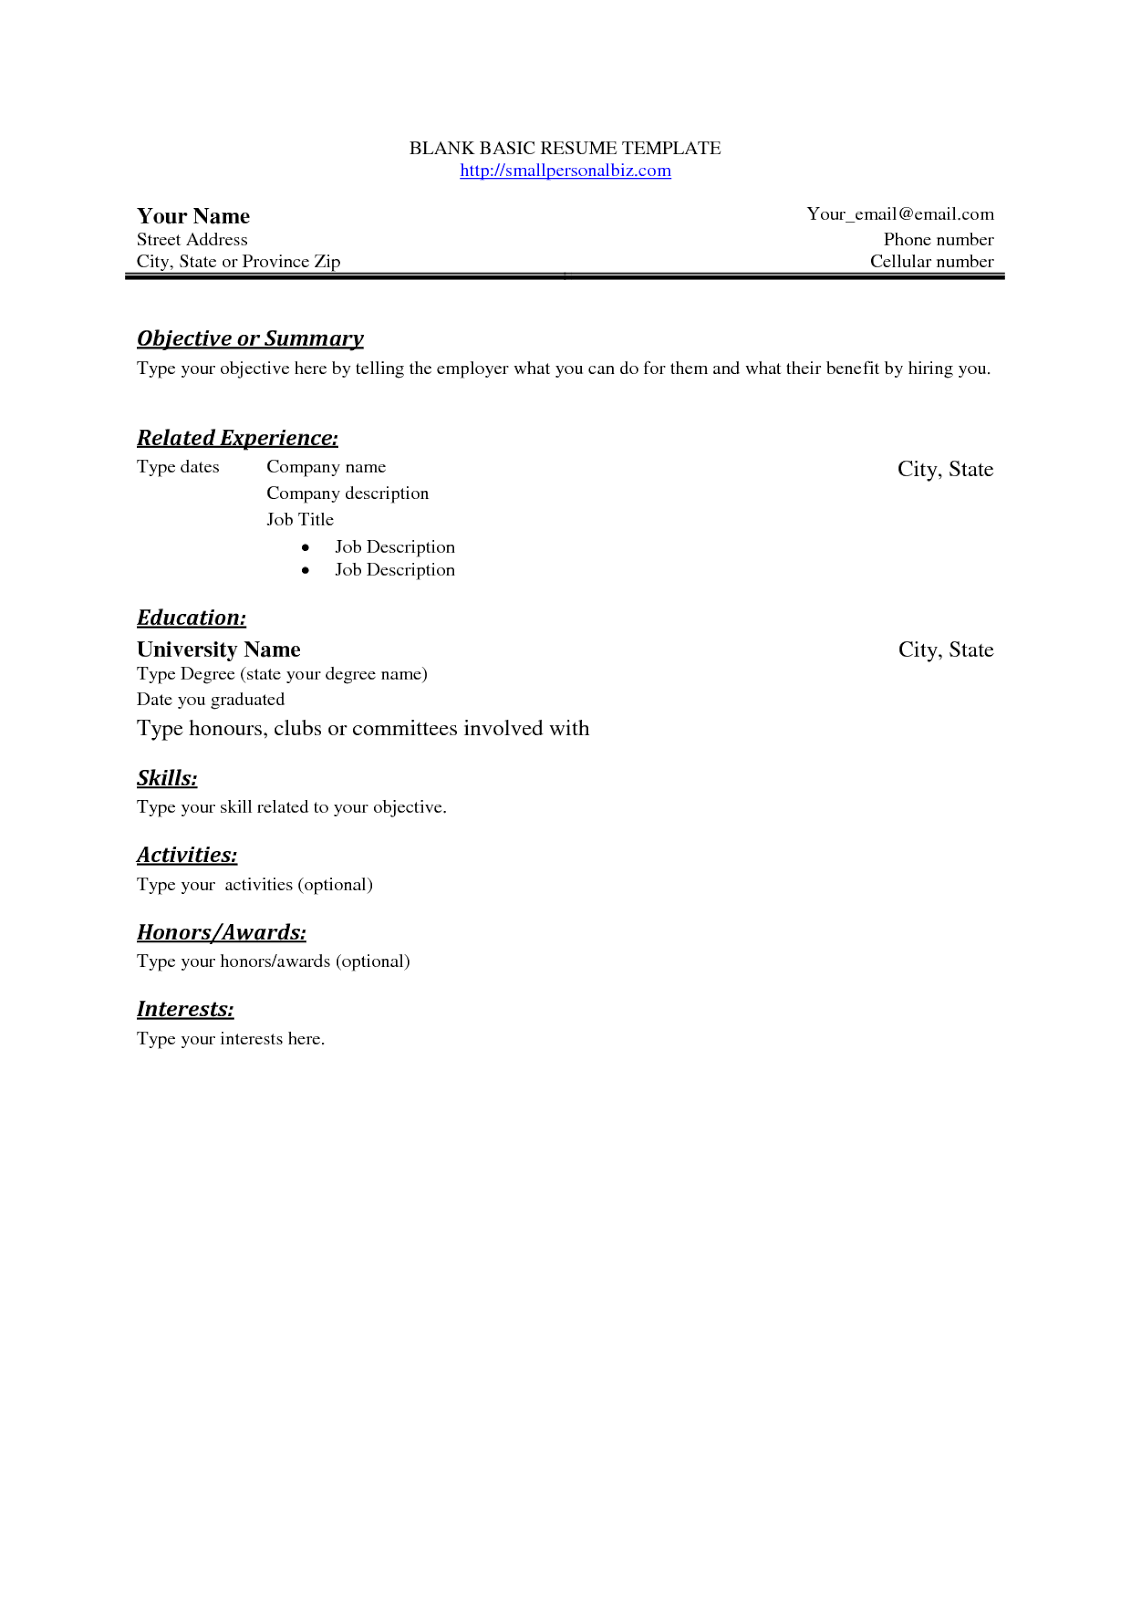 resume format ready to fill up coverletter for job education resume format ready to fill up resume templates 412 examples resume builder resume blank templates